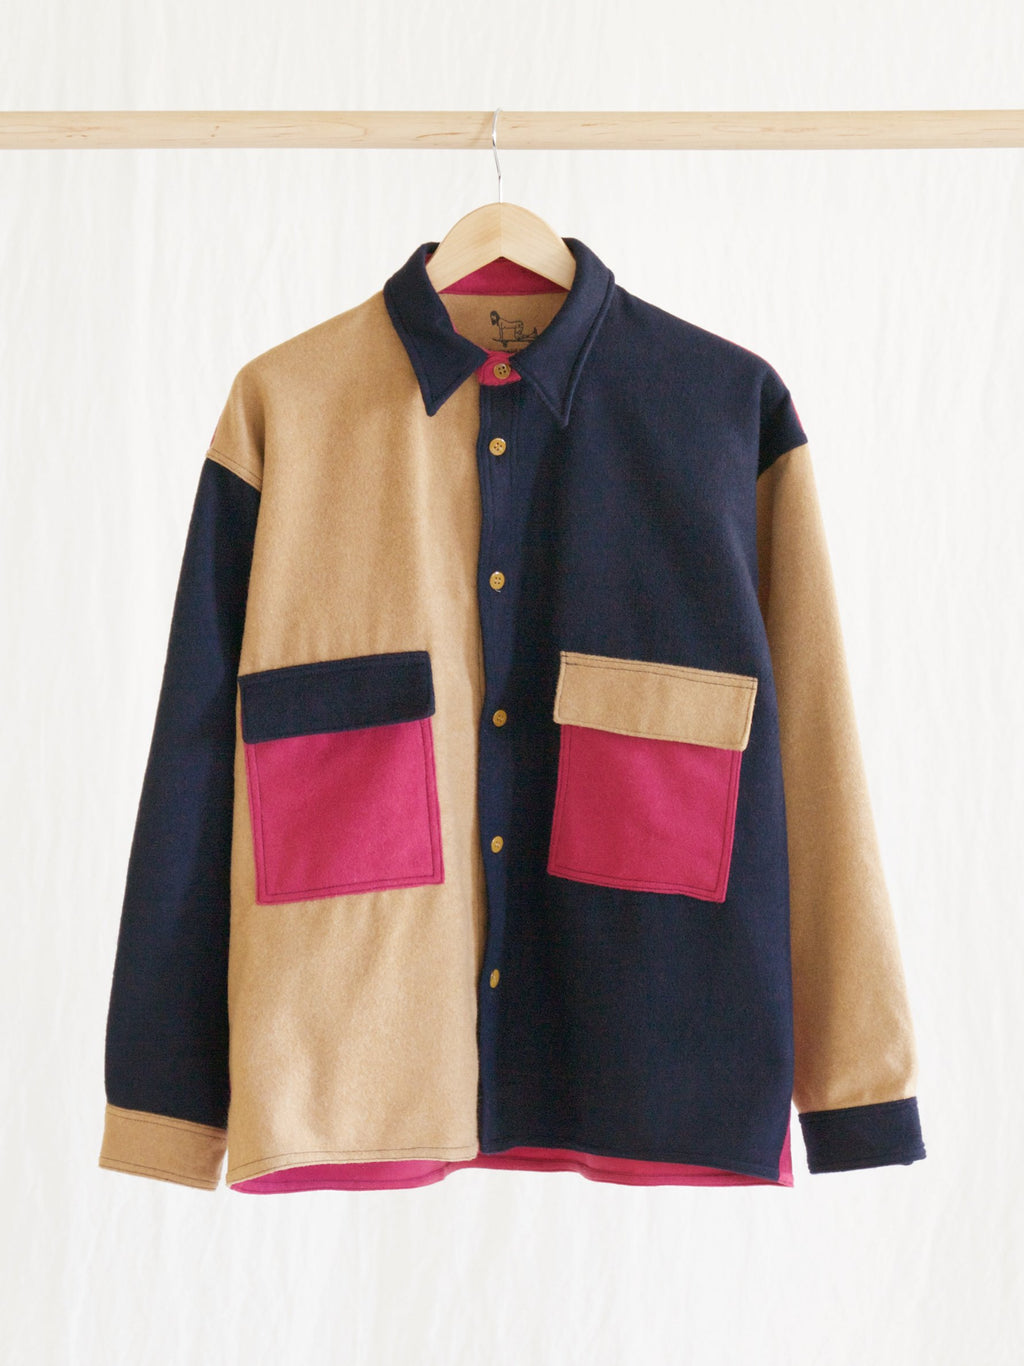 Namu Shop - Niche M.B.C Wool Shirt Jacket (Diskah collab)